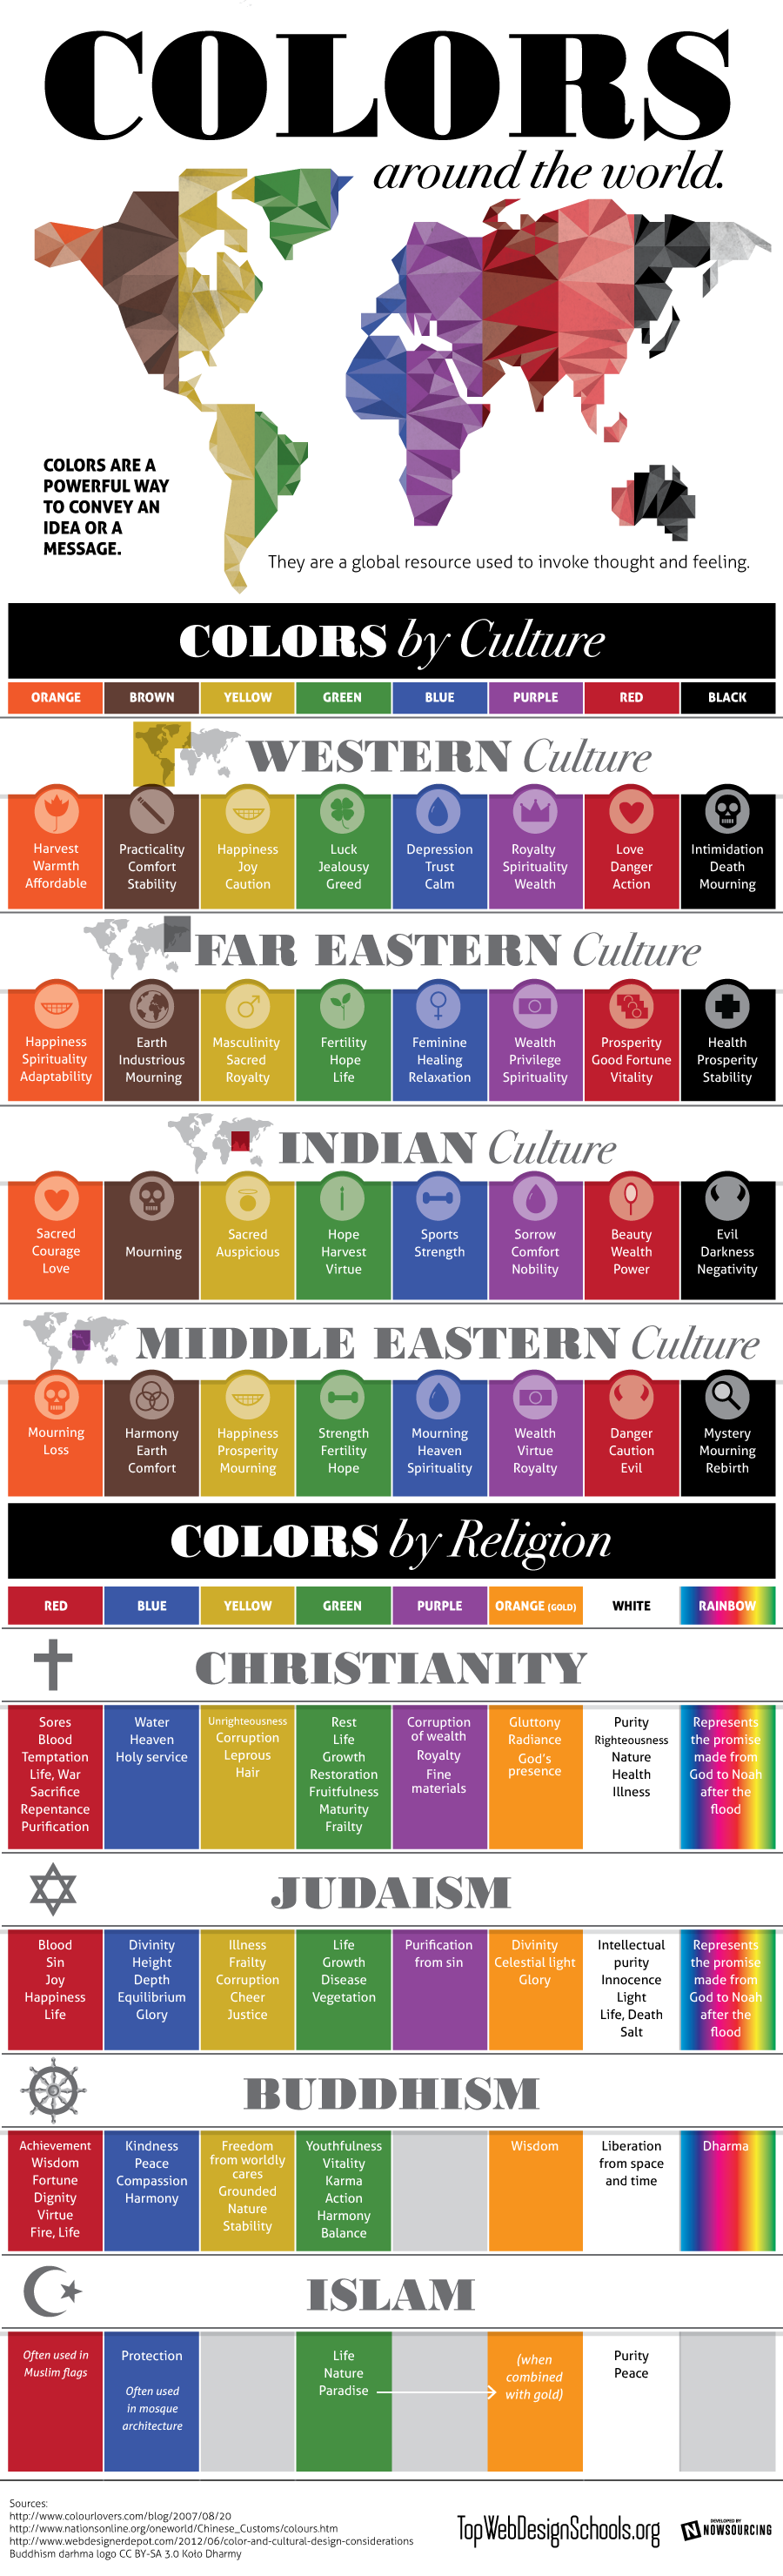 Color Perception by Culture-Infographic